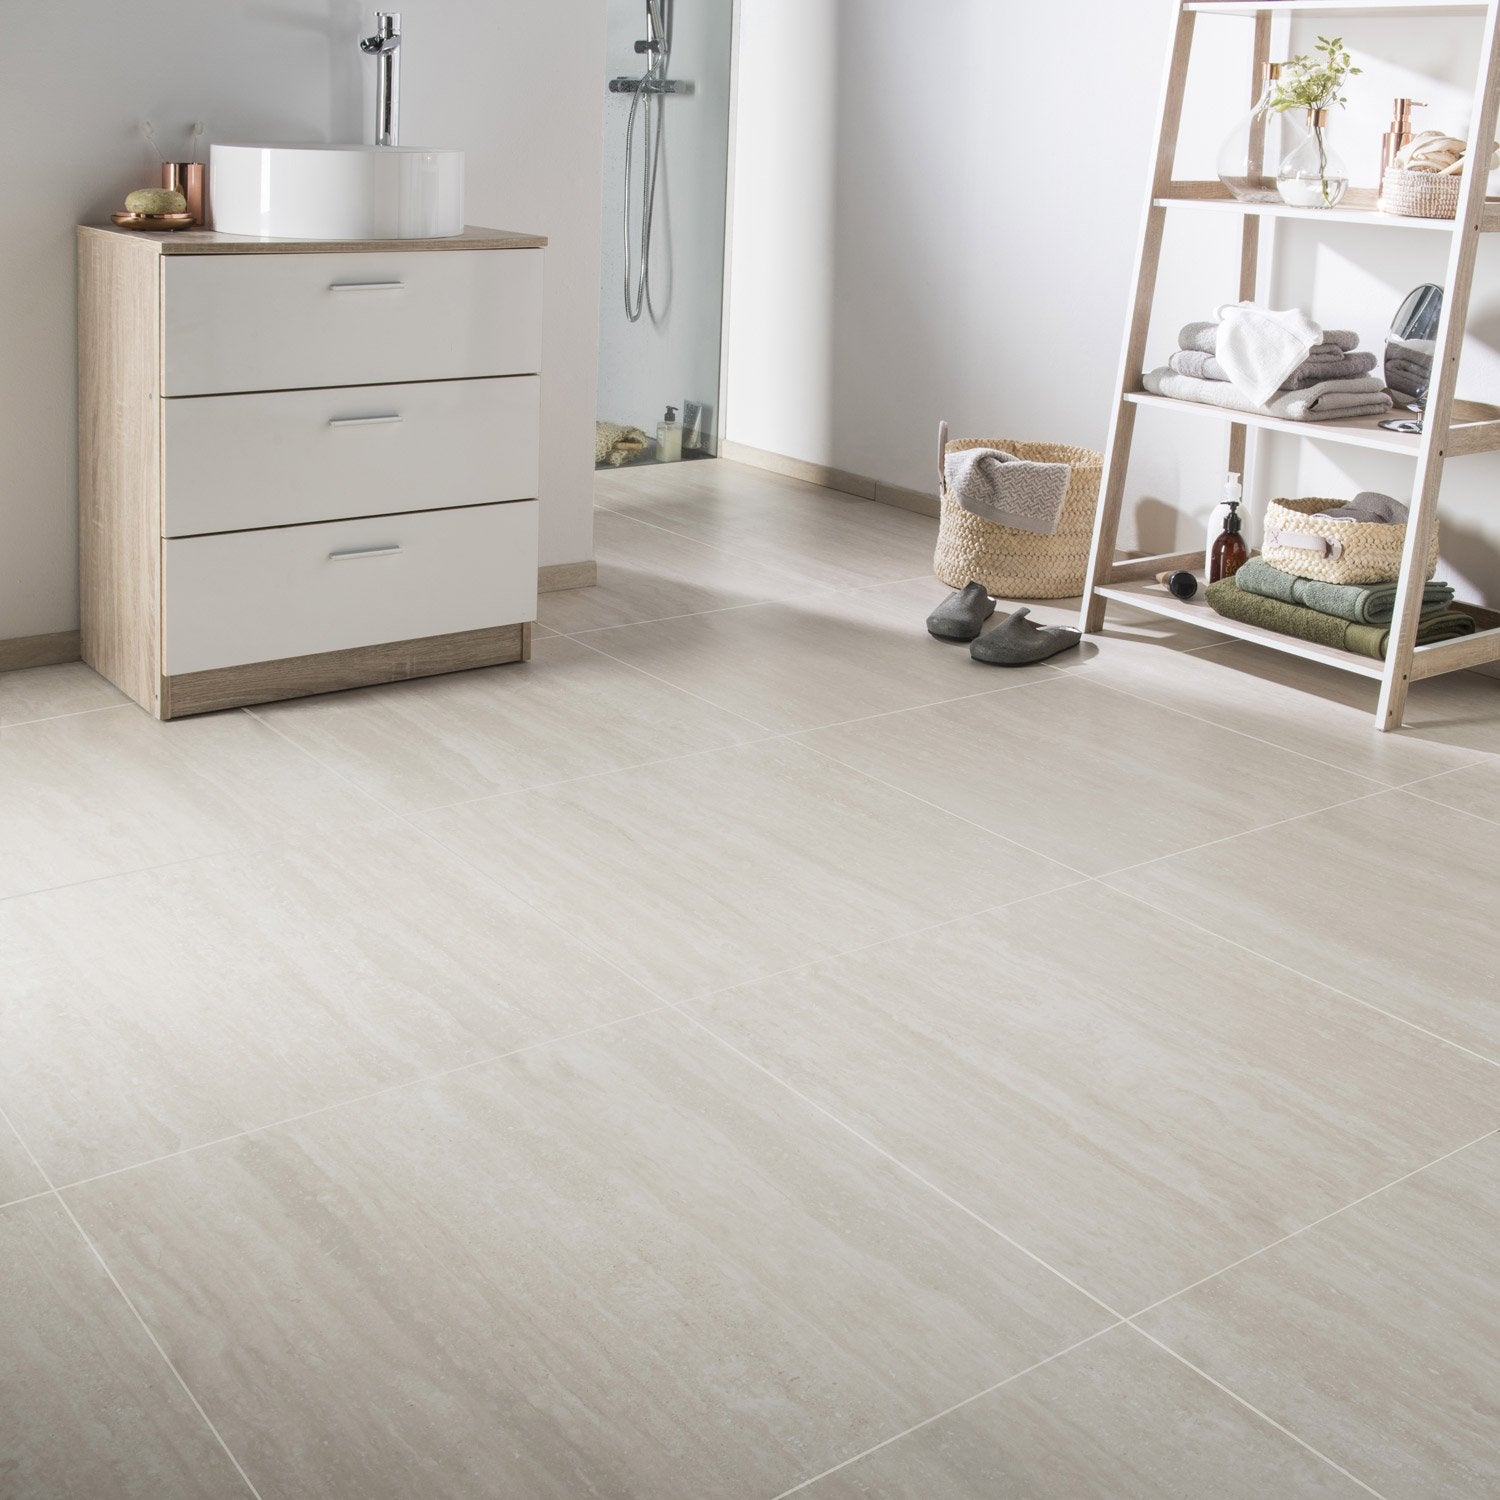 Carrelage marbre salon for Mattout carrelage